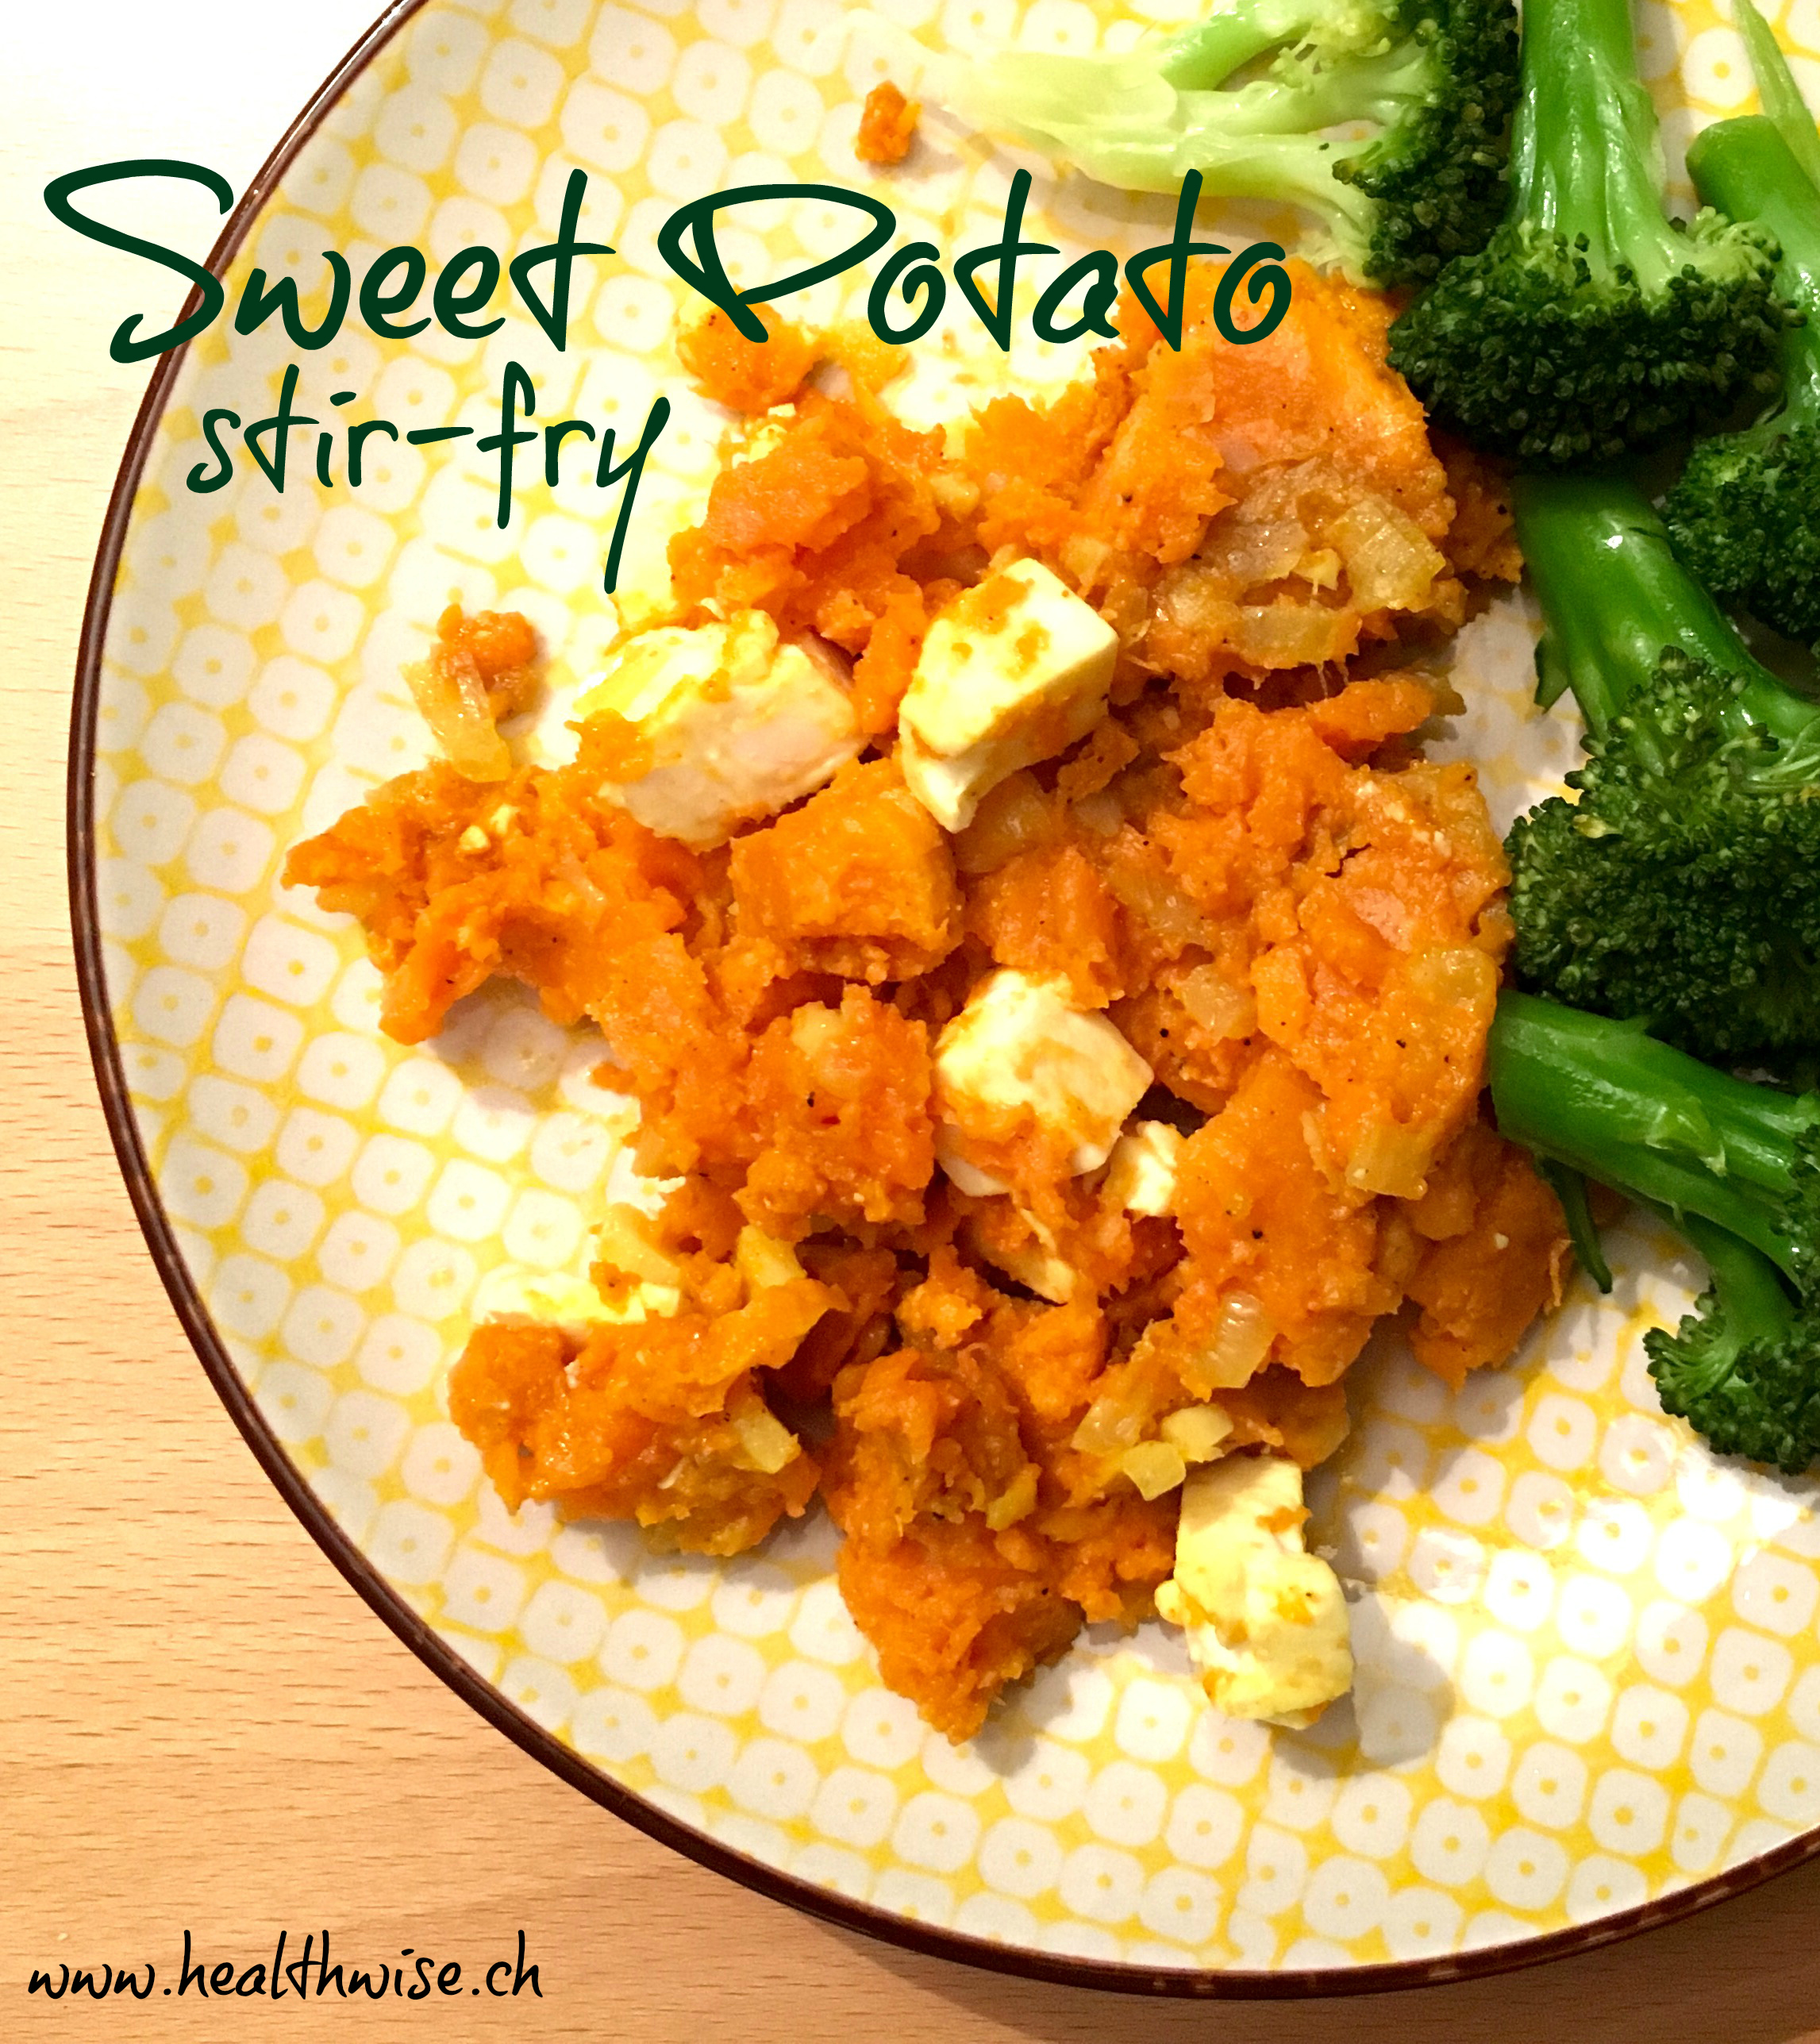 sweet potato stir-fry